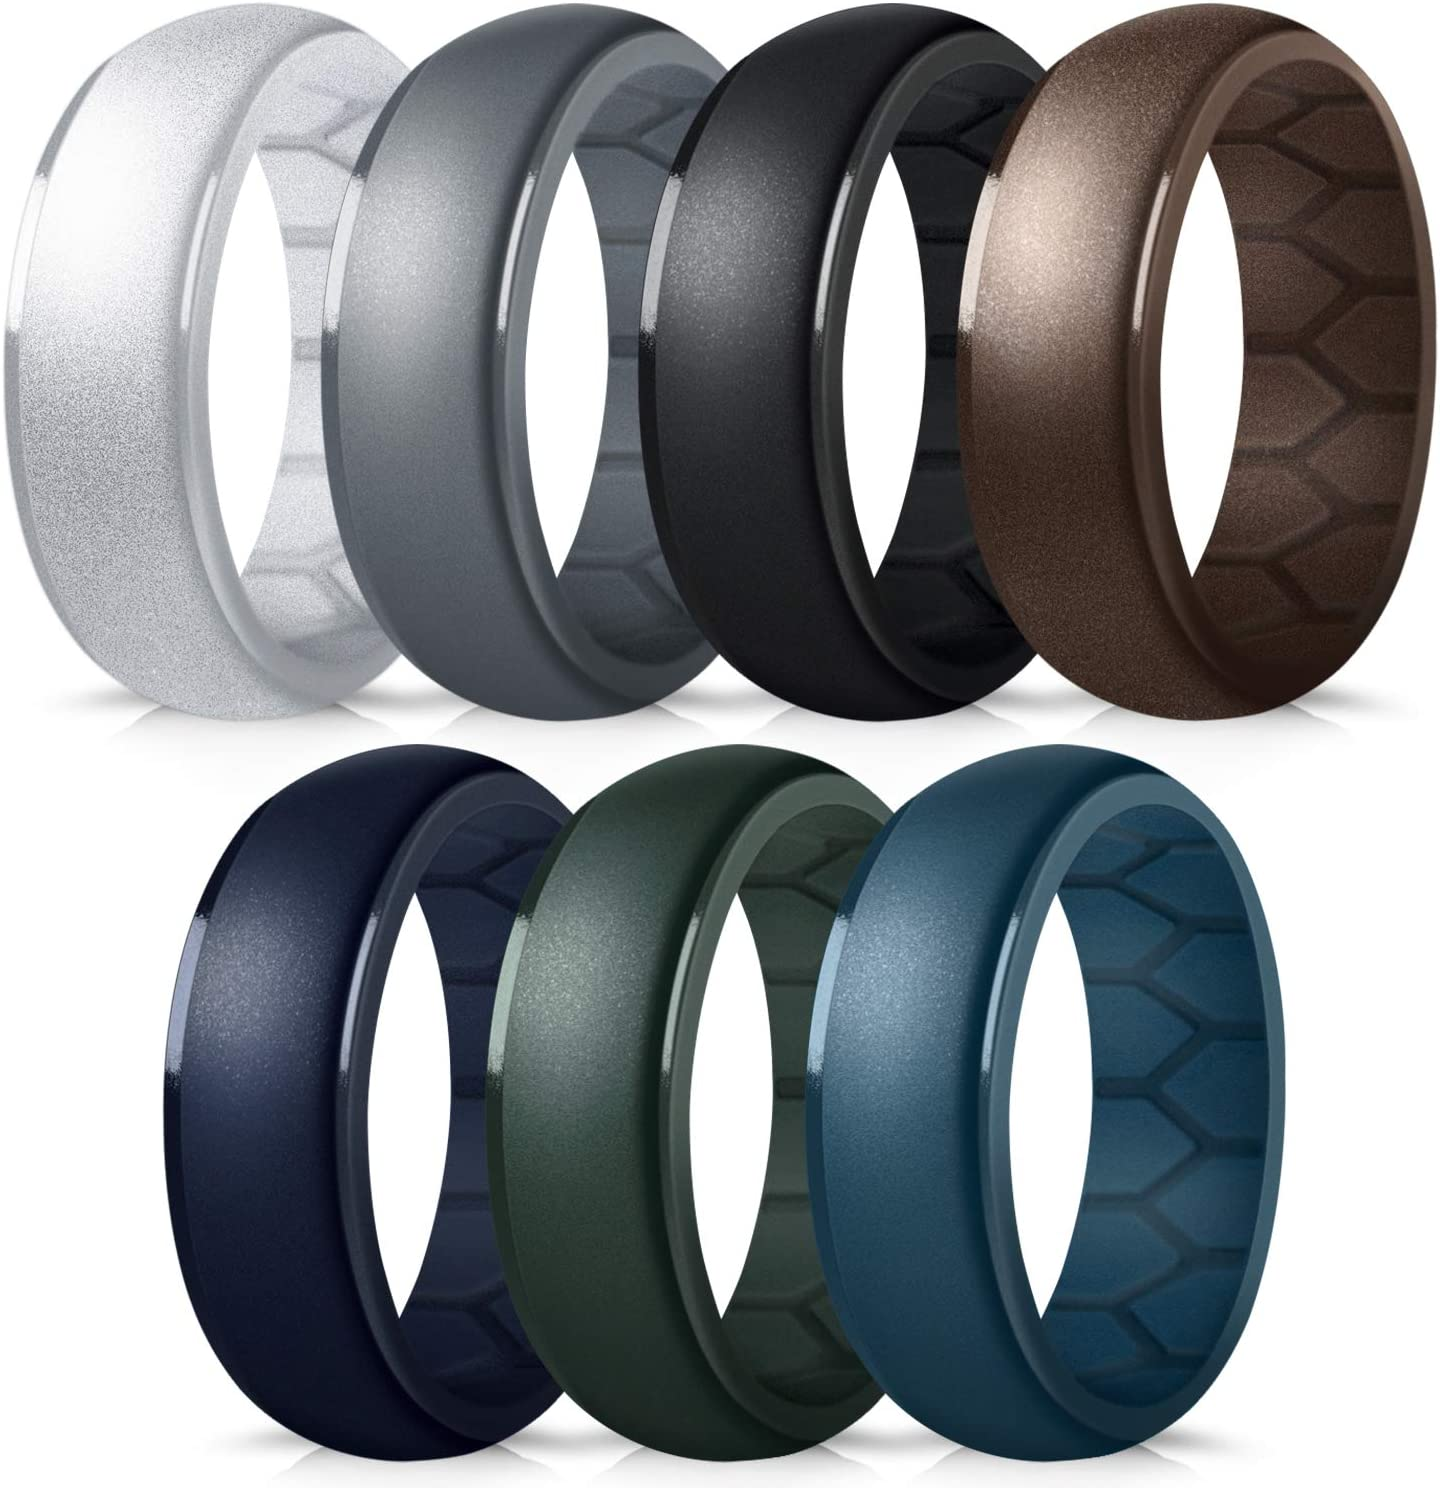 Mens Rubber Wedding Engagement Bands for Crossfit Workout Breathable Airflow Inner Curve Forthee Silicone Wedding Ring for Men